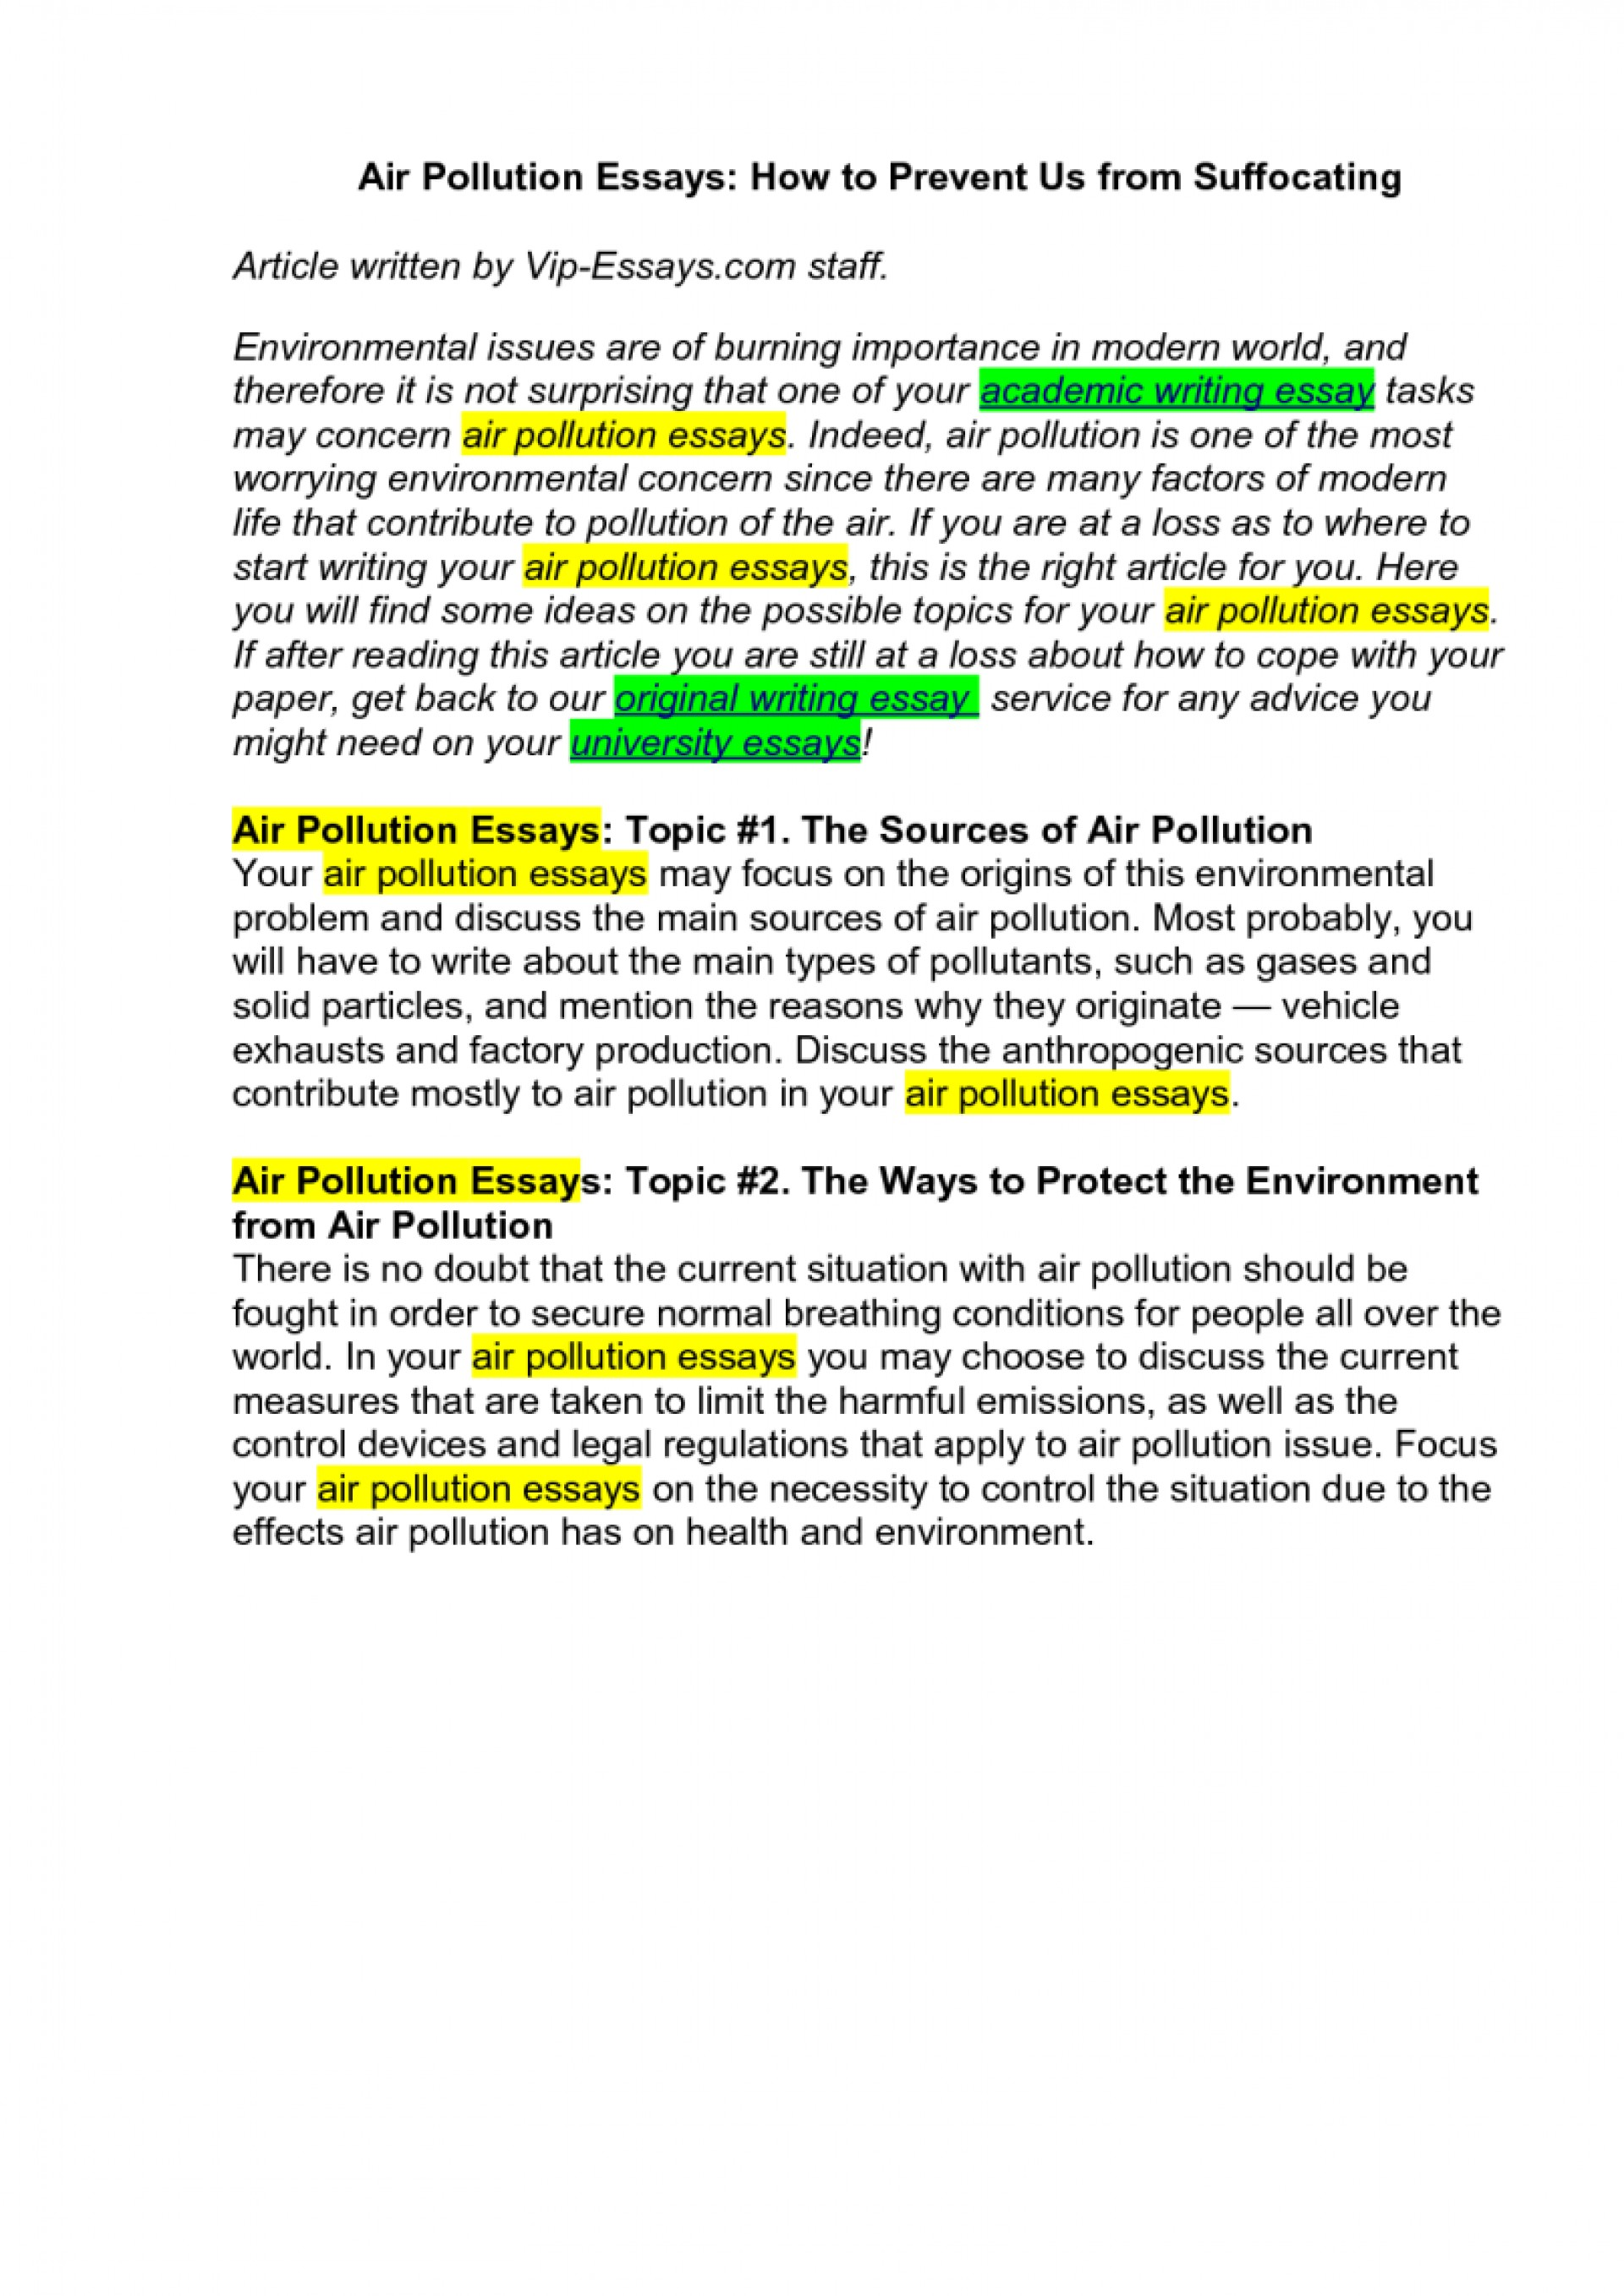 013 Essay On Air Pollution For Kids Best Ideas Of Innglish Words Coolnvironmental Pollutionresize8062c1140 Sensational 1920